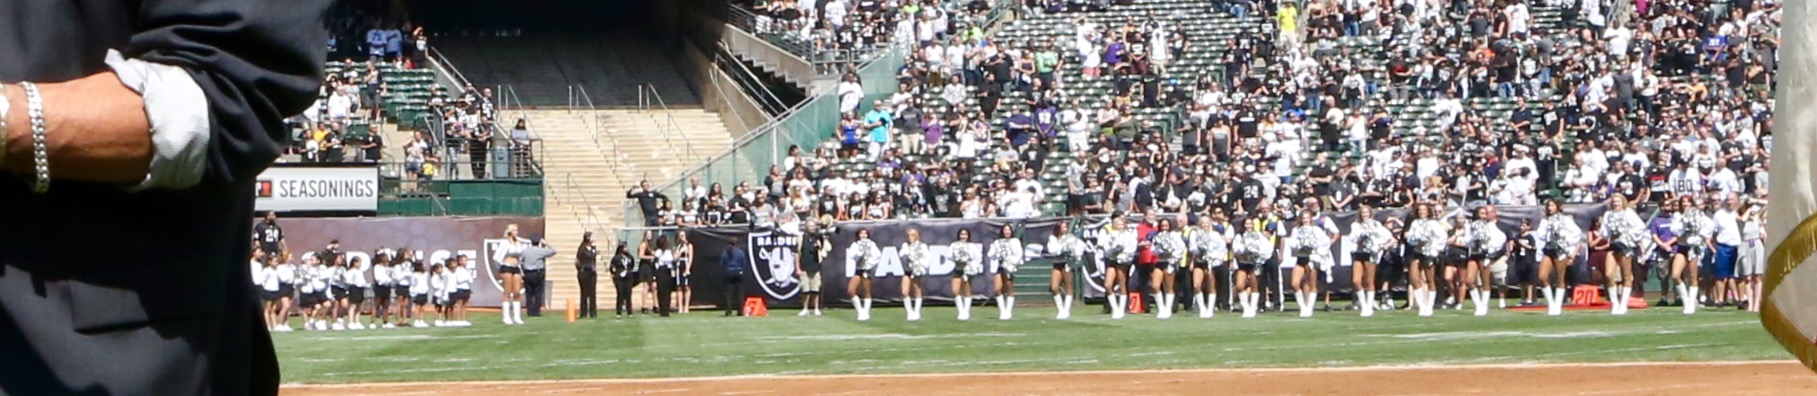 This is a photo of Craig Chiquico performing the National Anthem at The Oakland Raiders vs. Baltimore Ravens game, The Oakland Raiders won 37-33. The game was played at O.Co Coliseum in Oakland, California. September 22, 2015.